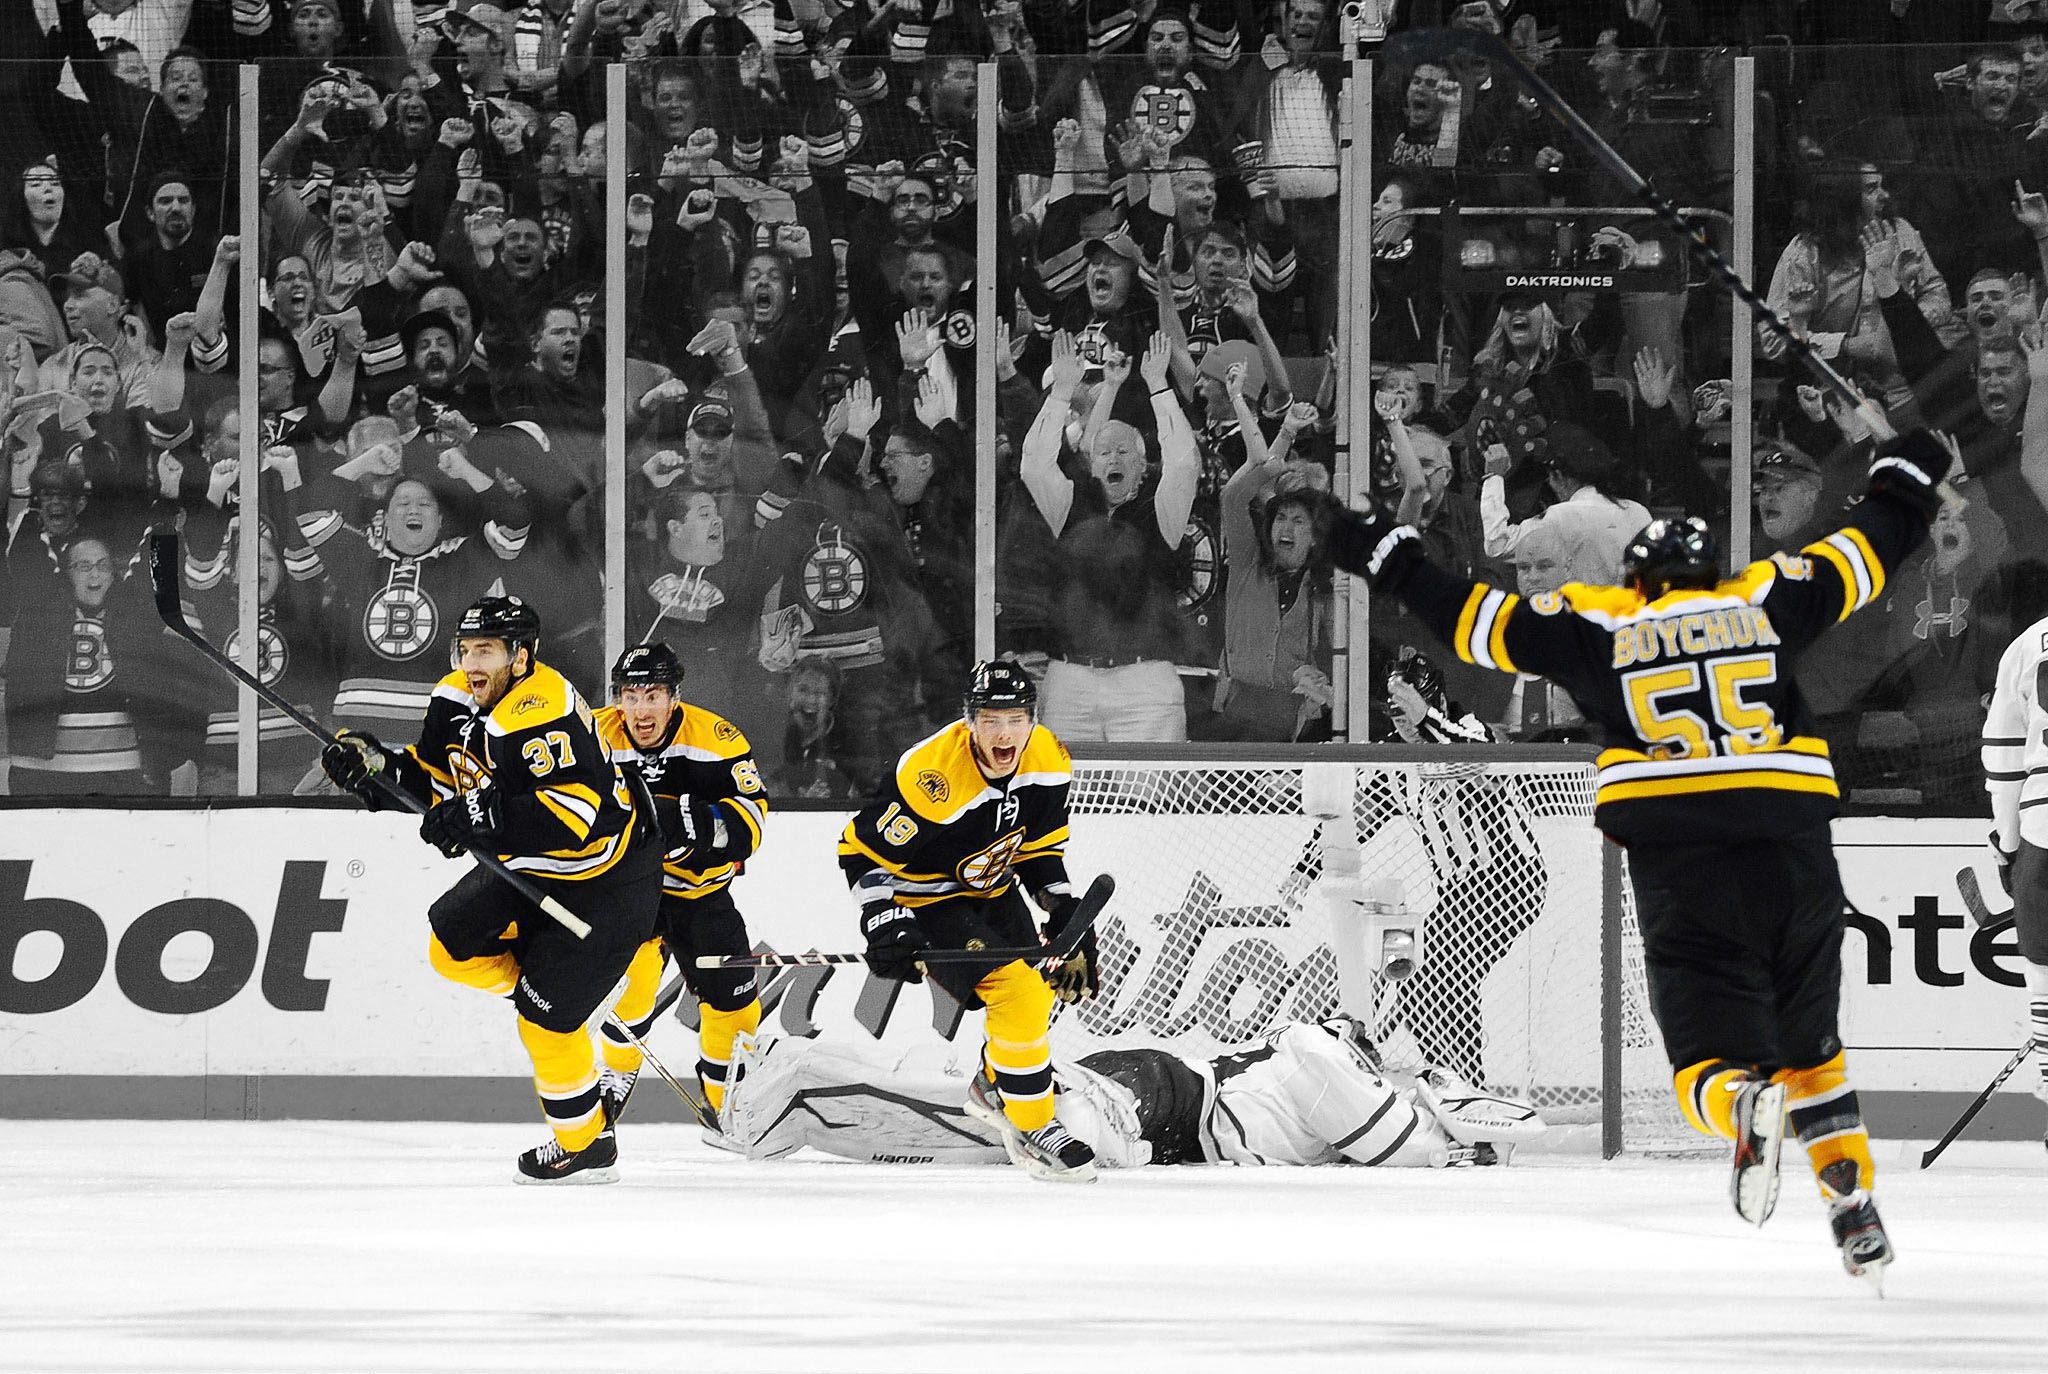 Boston Bruins HD Desktop